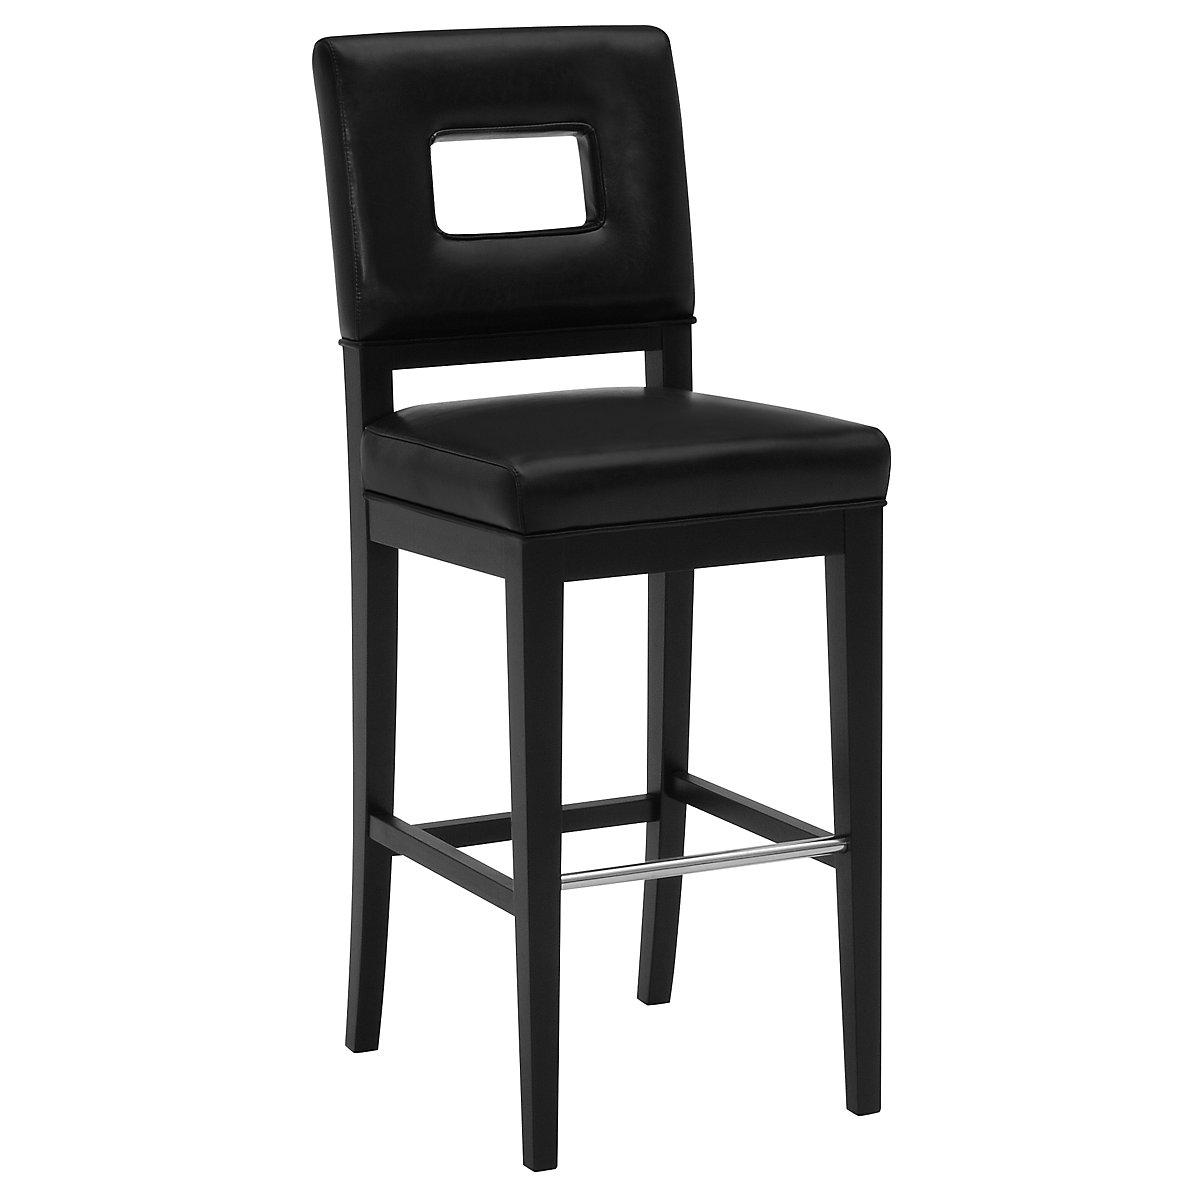 "Aspen Black 30"" Bonded Leather Barstool"